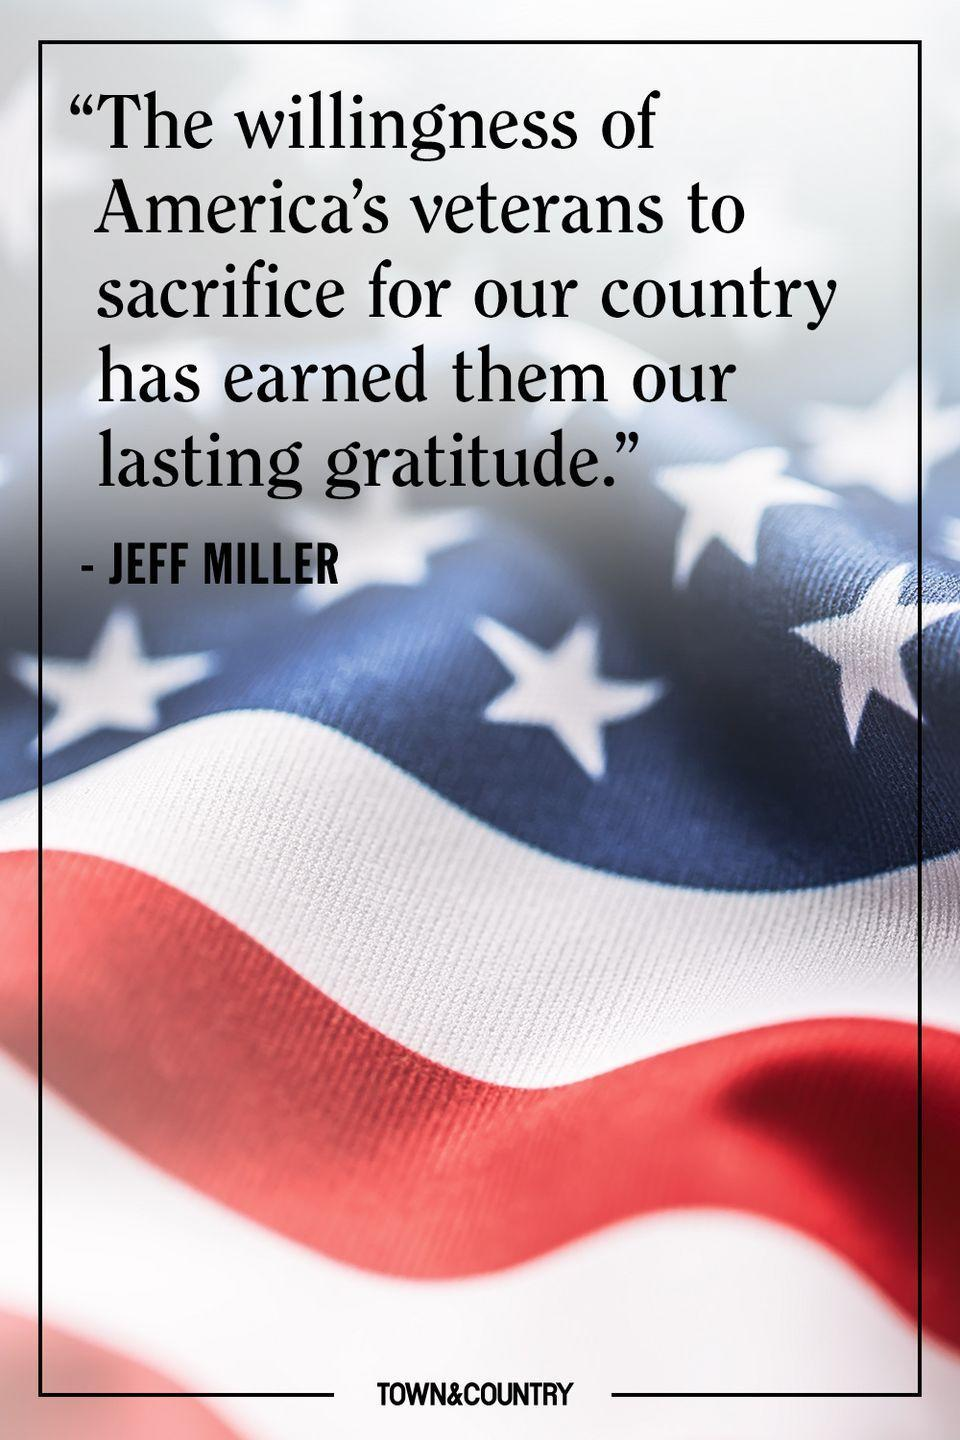 "<p>""The willingness of America's veterans to sacrifice for our country has earned them our lasting gratitude.""</p><p>– Jeff Miller </p>"